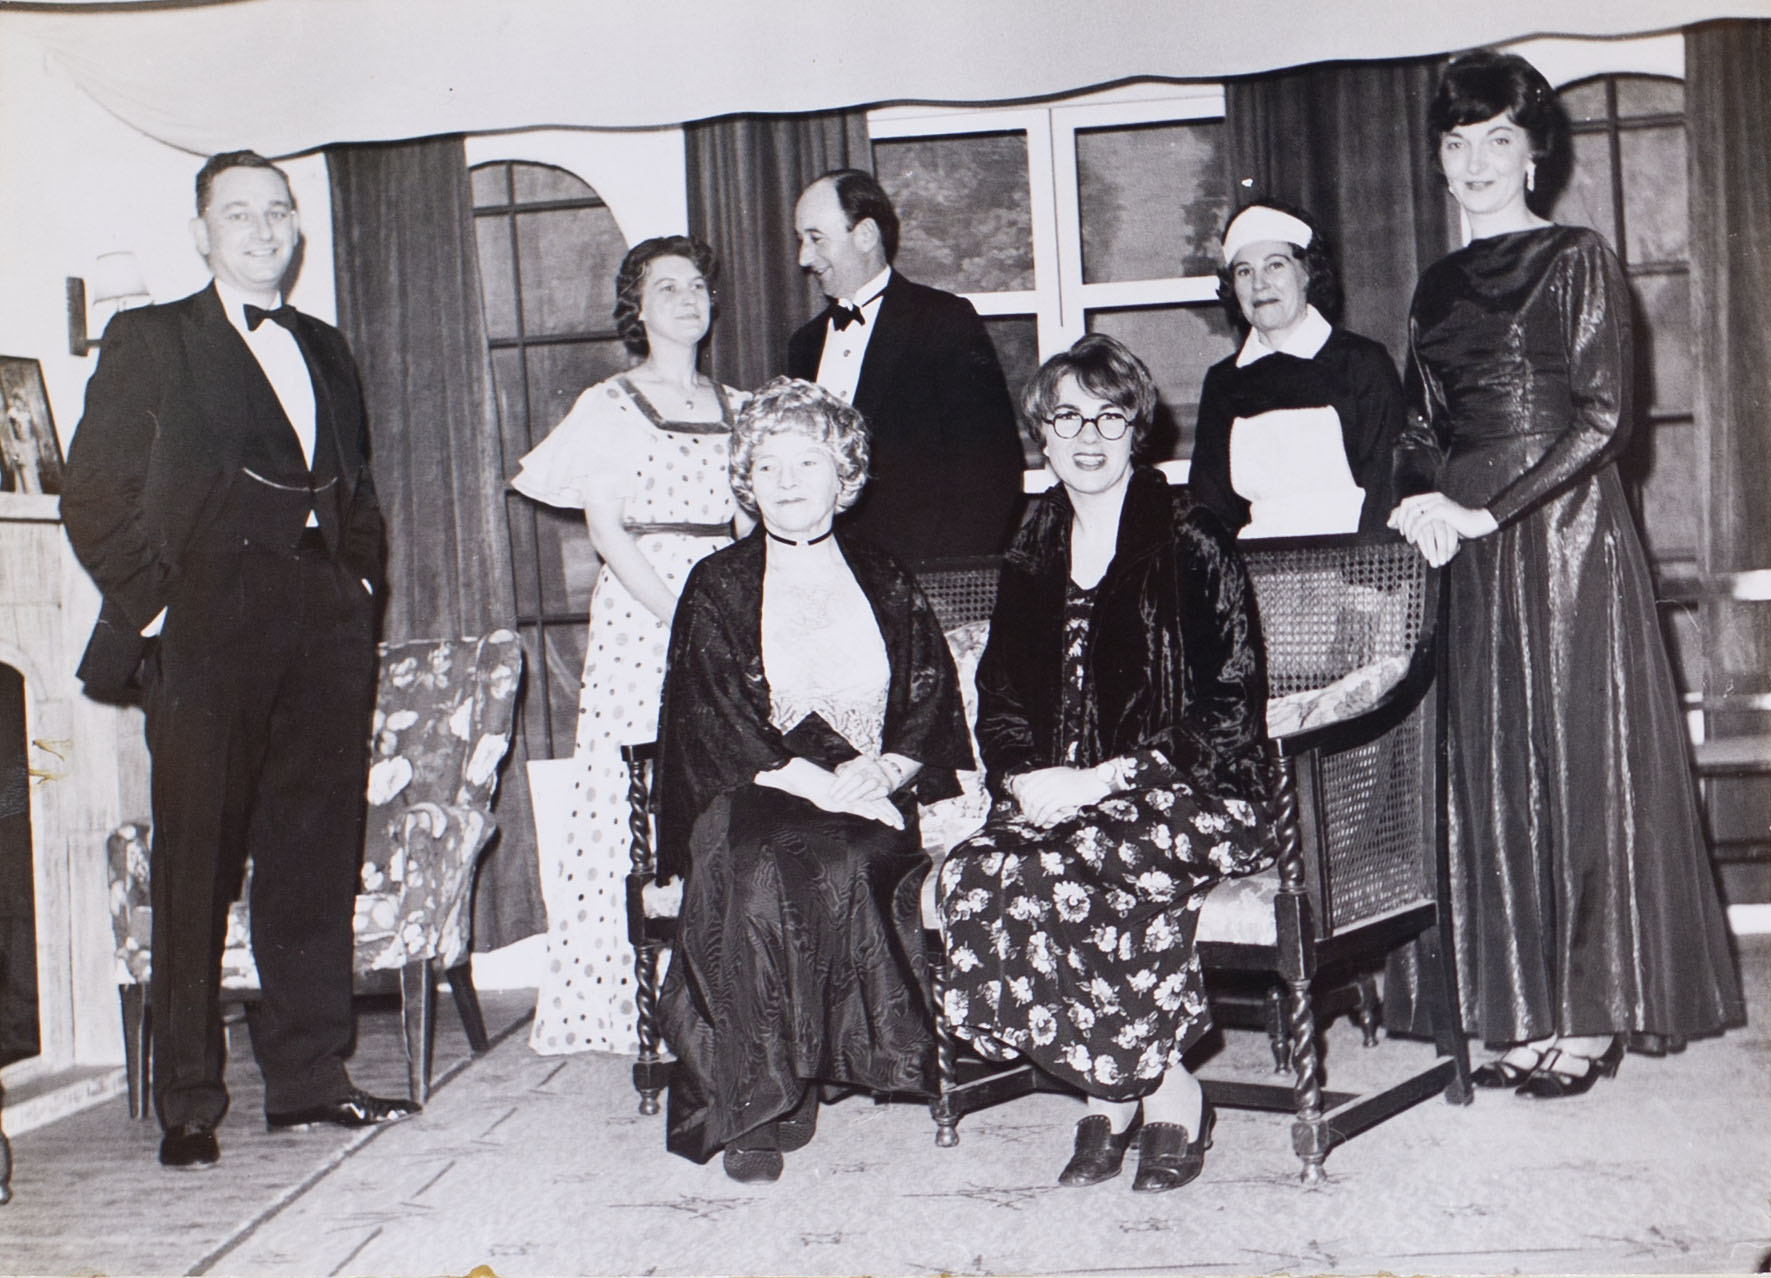 Photograph showing the cast in a scene from the play 'The Haxtons' performed by Bishopsteignton Players